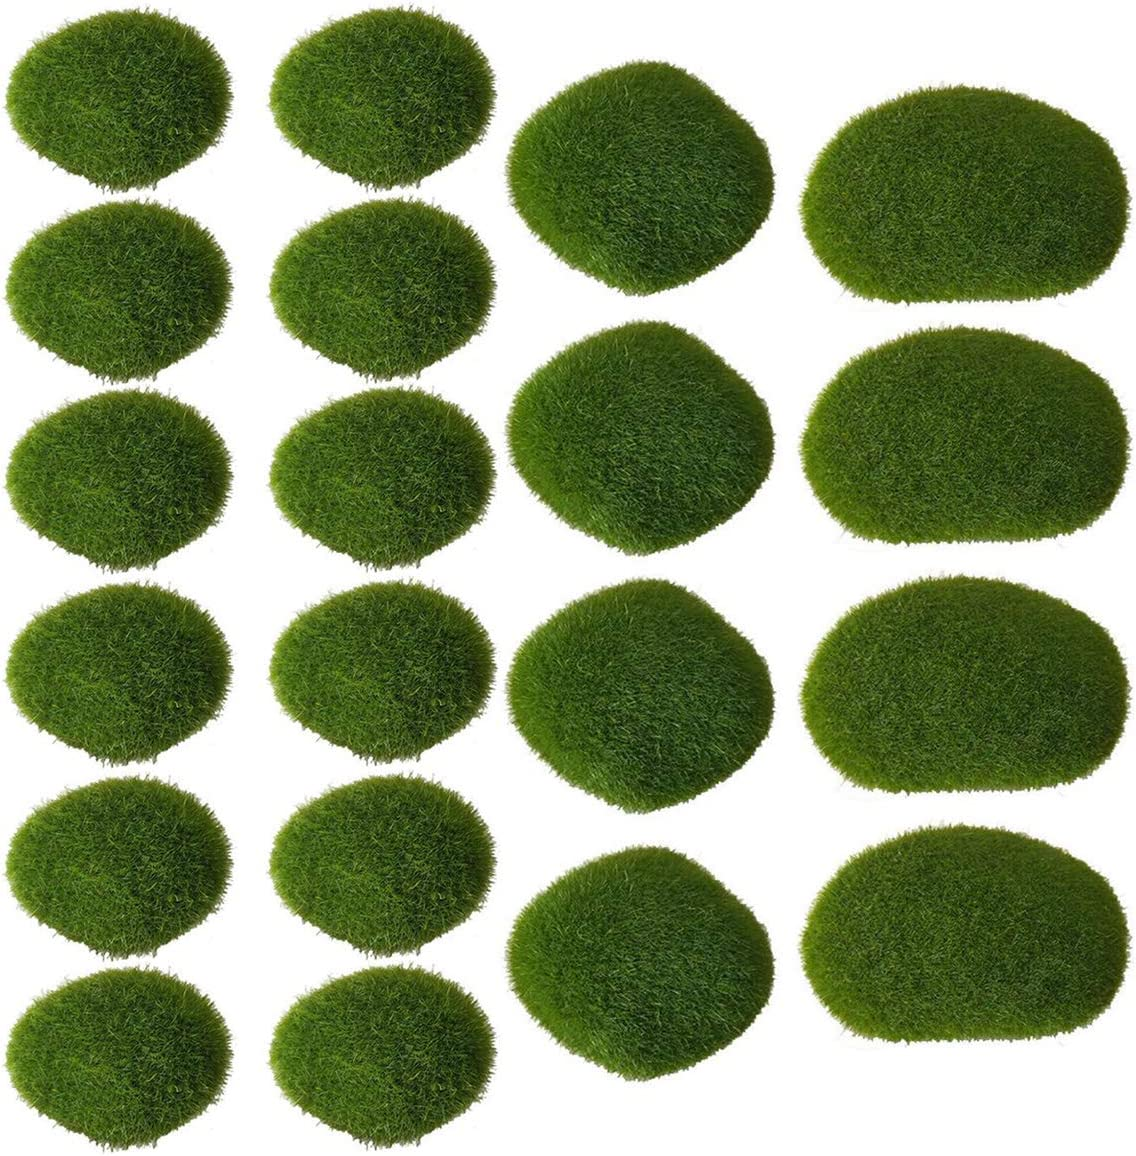 Pupdoge 20 Pcs 3 Sizes Artificial Moss Rocks Decorative Faux Green Moss Covered Stones for Fairy Gardens Crafting Terrariums